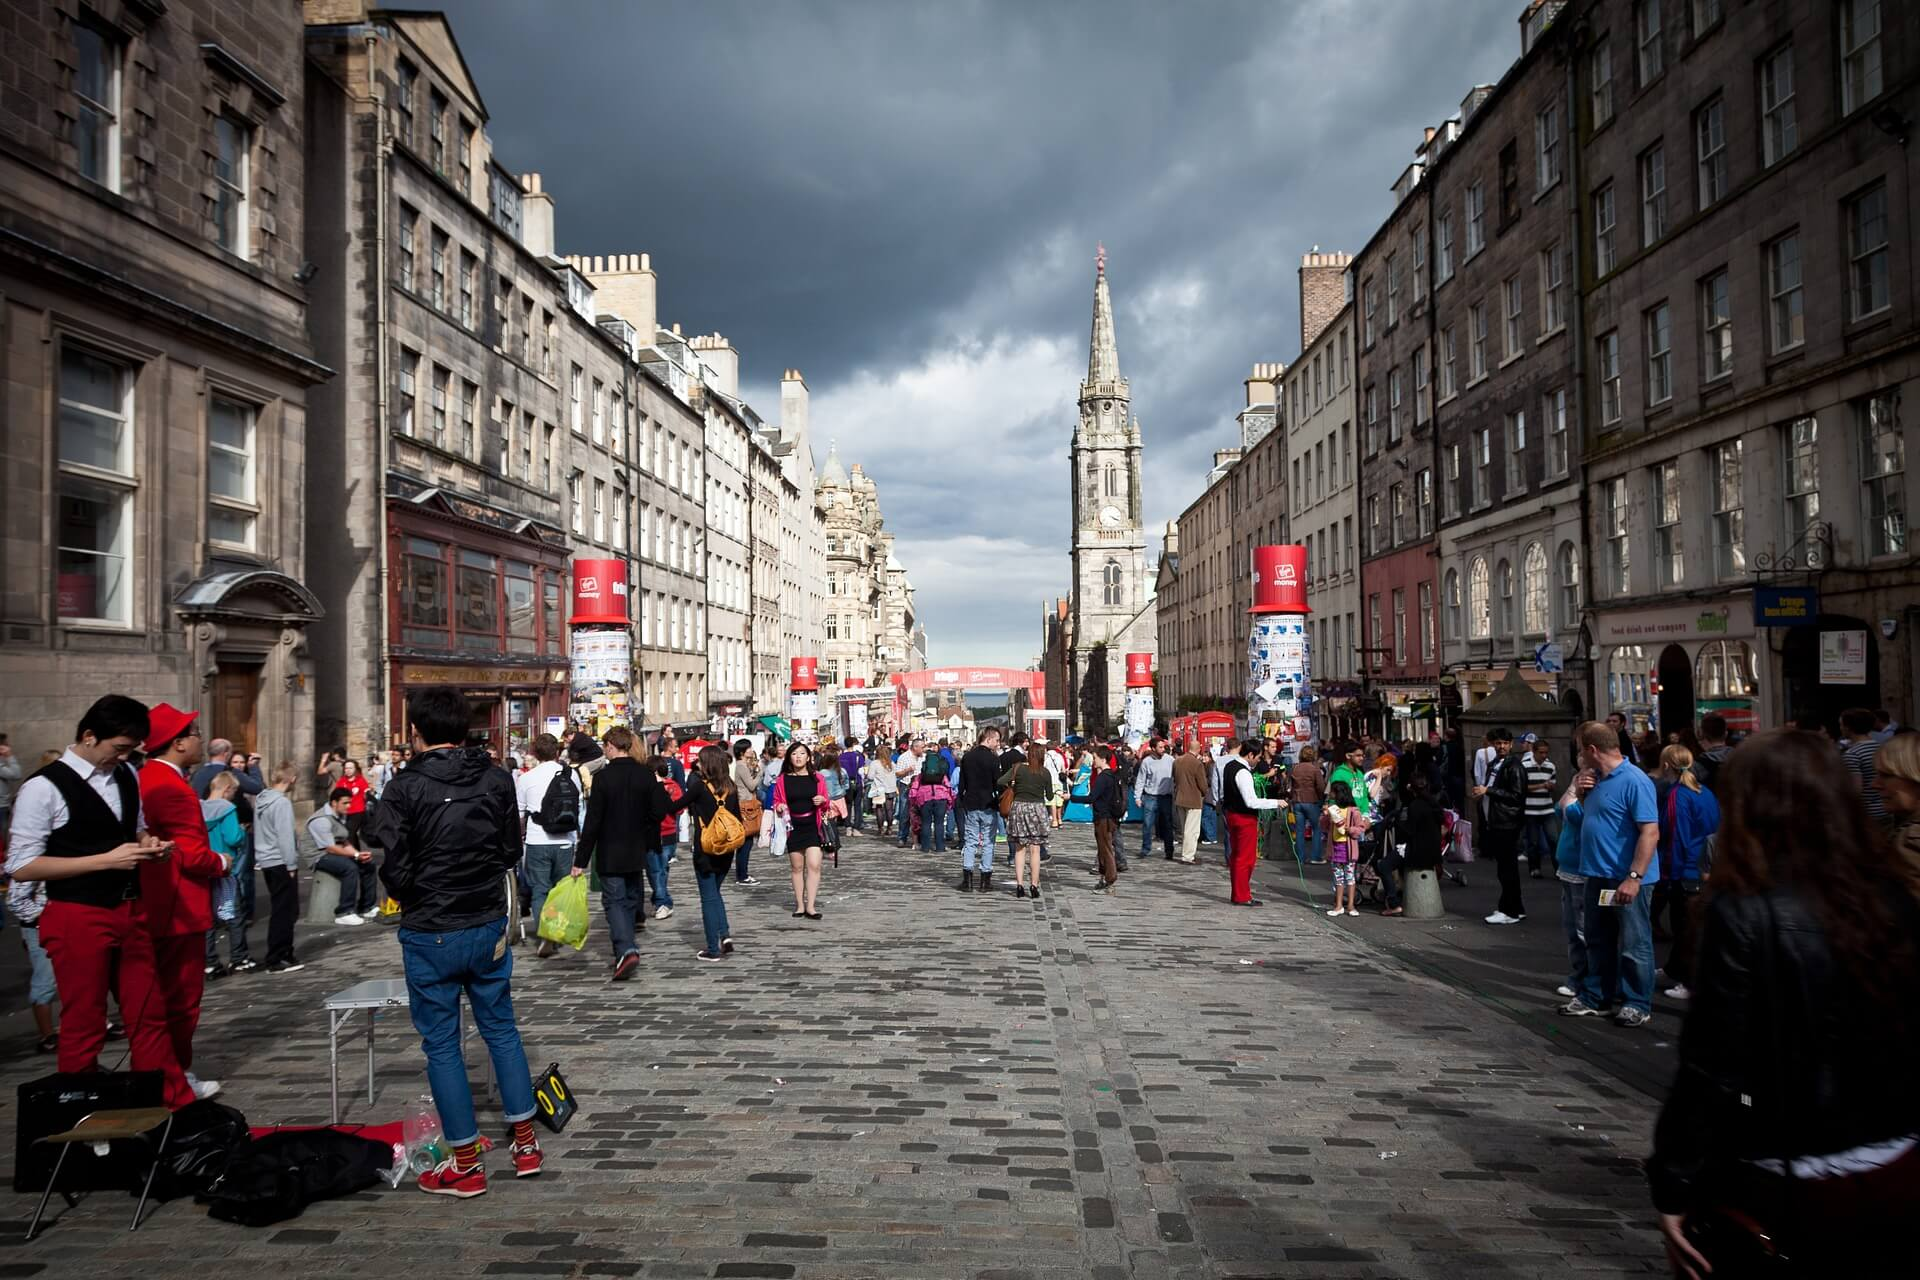 Edinburgh Luggage Storage: Where to Store your Bag During the Fringe